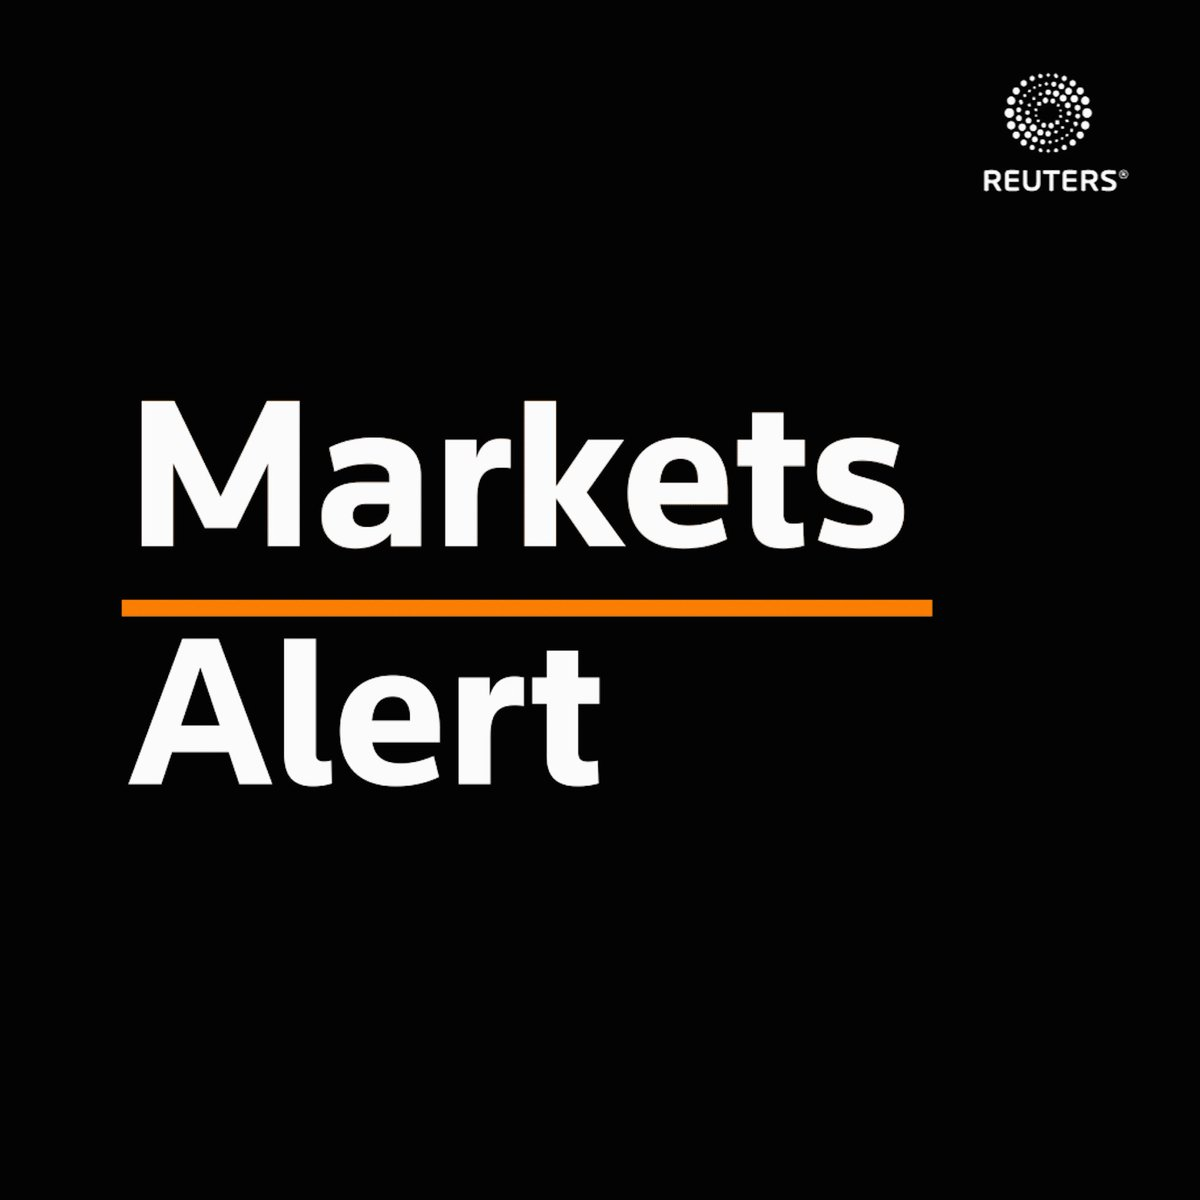 The S&P ended the day nearly flat, despite coming close again to its record closing high. Data on the U.S. economy has added to uncertainty over a recovery https://t.co/SBbxNLH4iI https://t.co/5yztgzJ67m